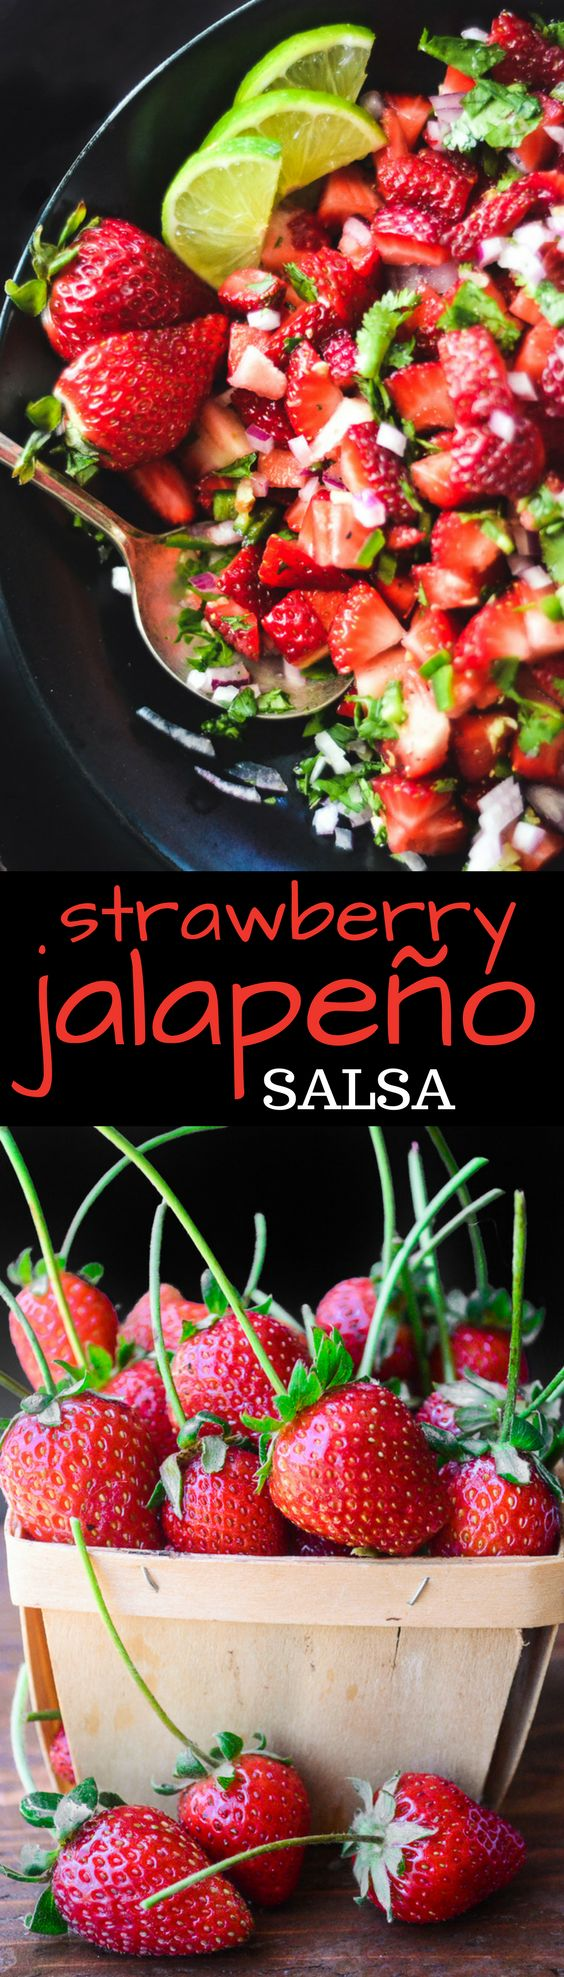 This Strawberry Jalapeno Salsa is really really good ~ juicy strawberries are tossed with lime, cilantro and finely minced red onion, with the added kick of jalapeño. You can use it on fish, tacos, chicken, meats, or just scoop it up with chips. It's the perfect spring appetizer!